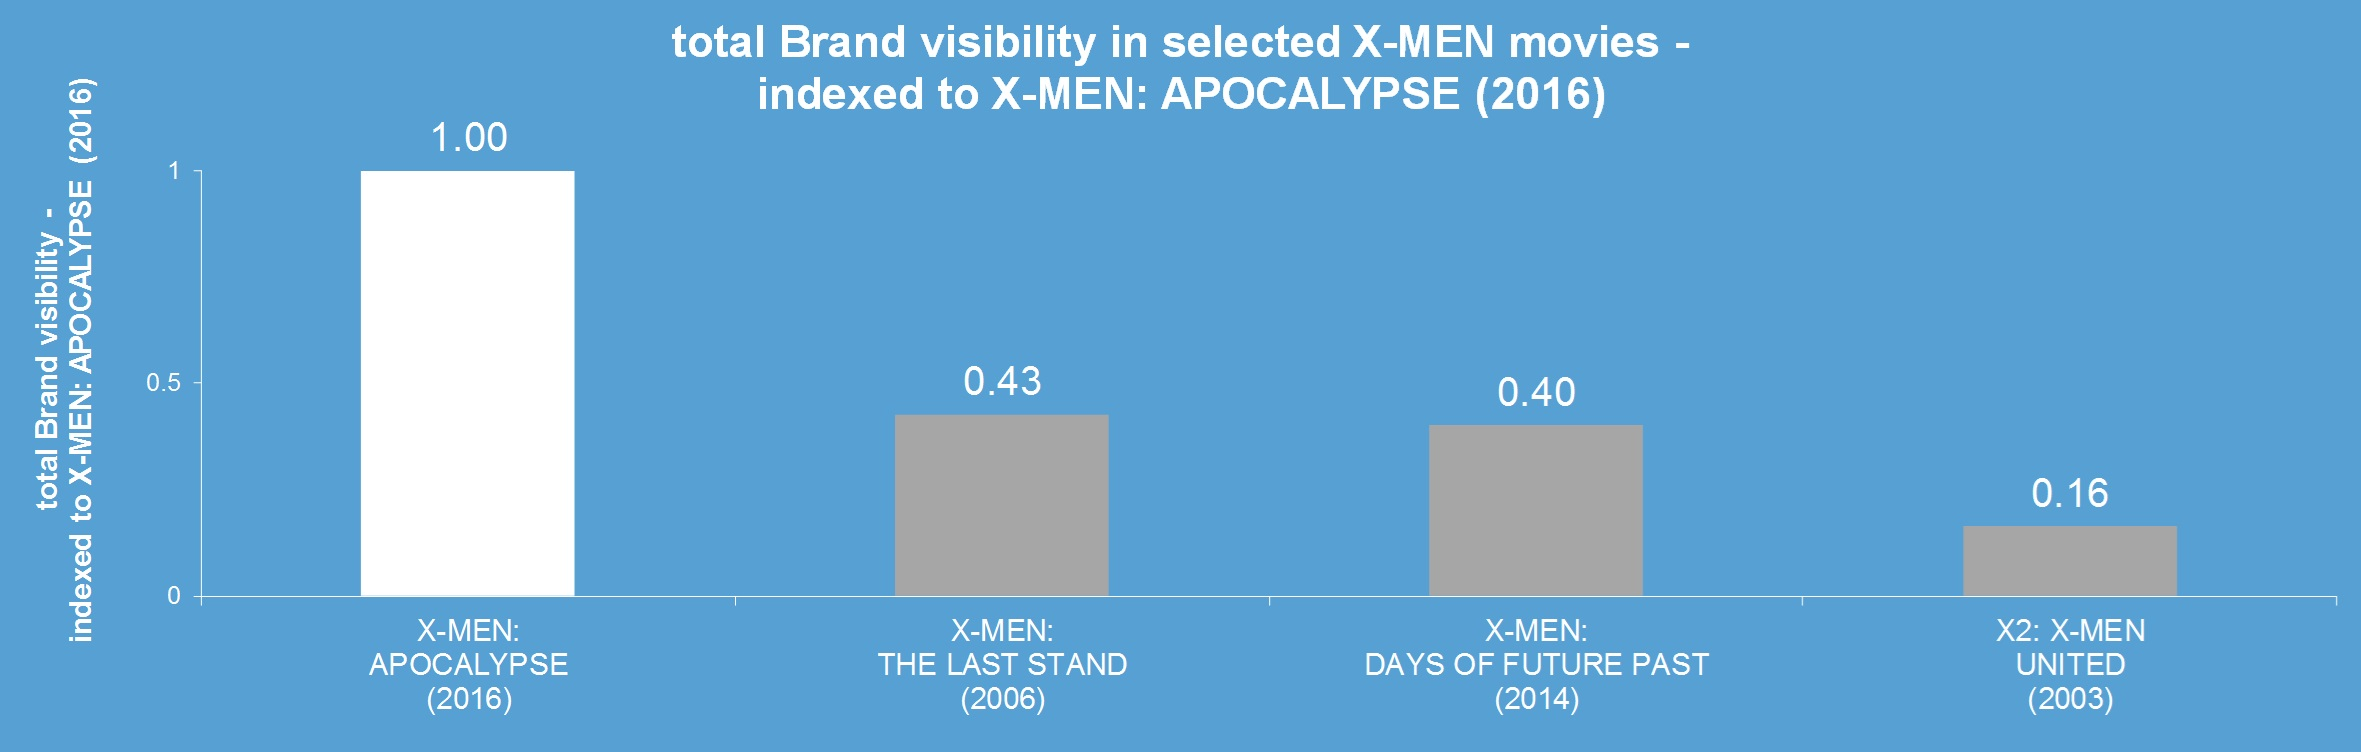 xmen movies x-men apocalypse brands product placement